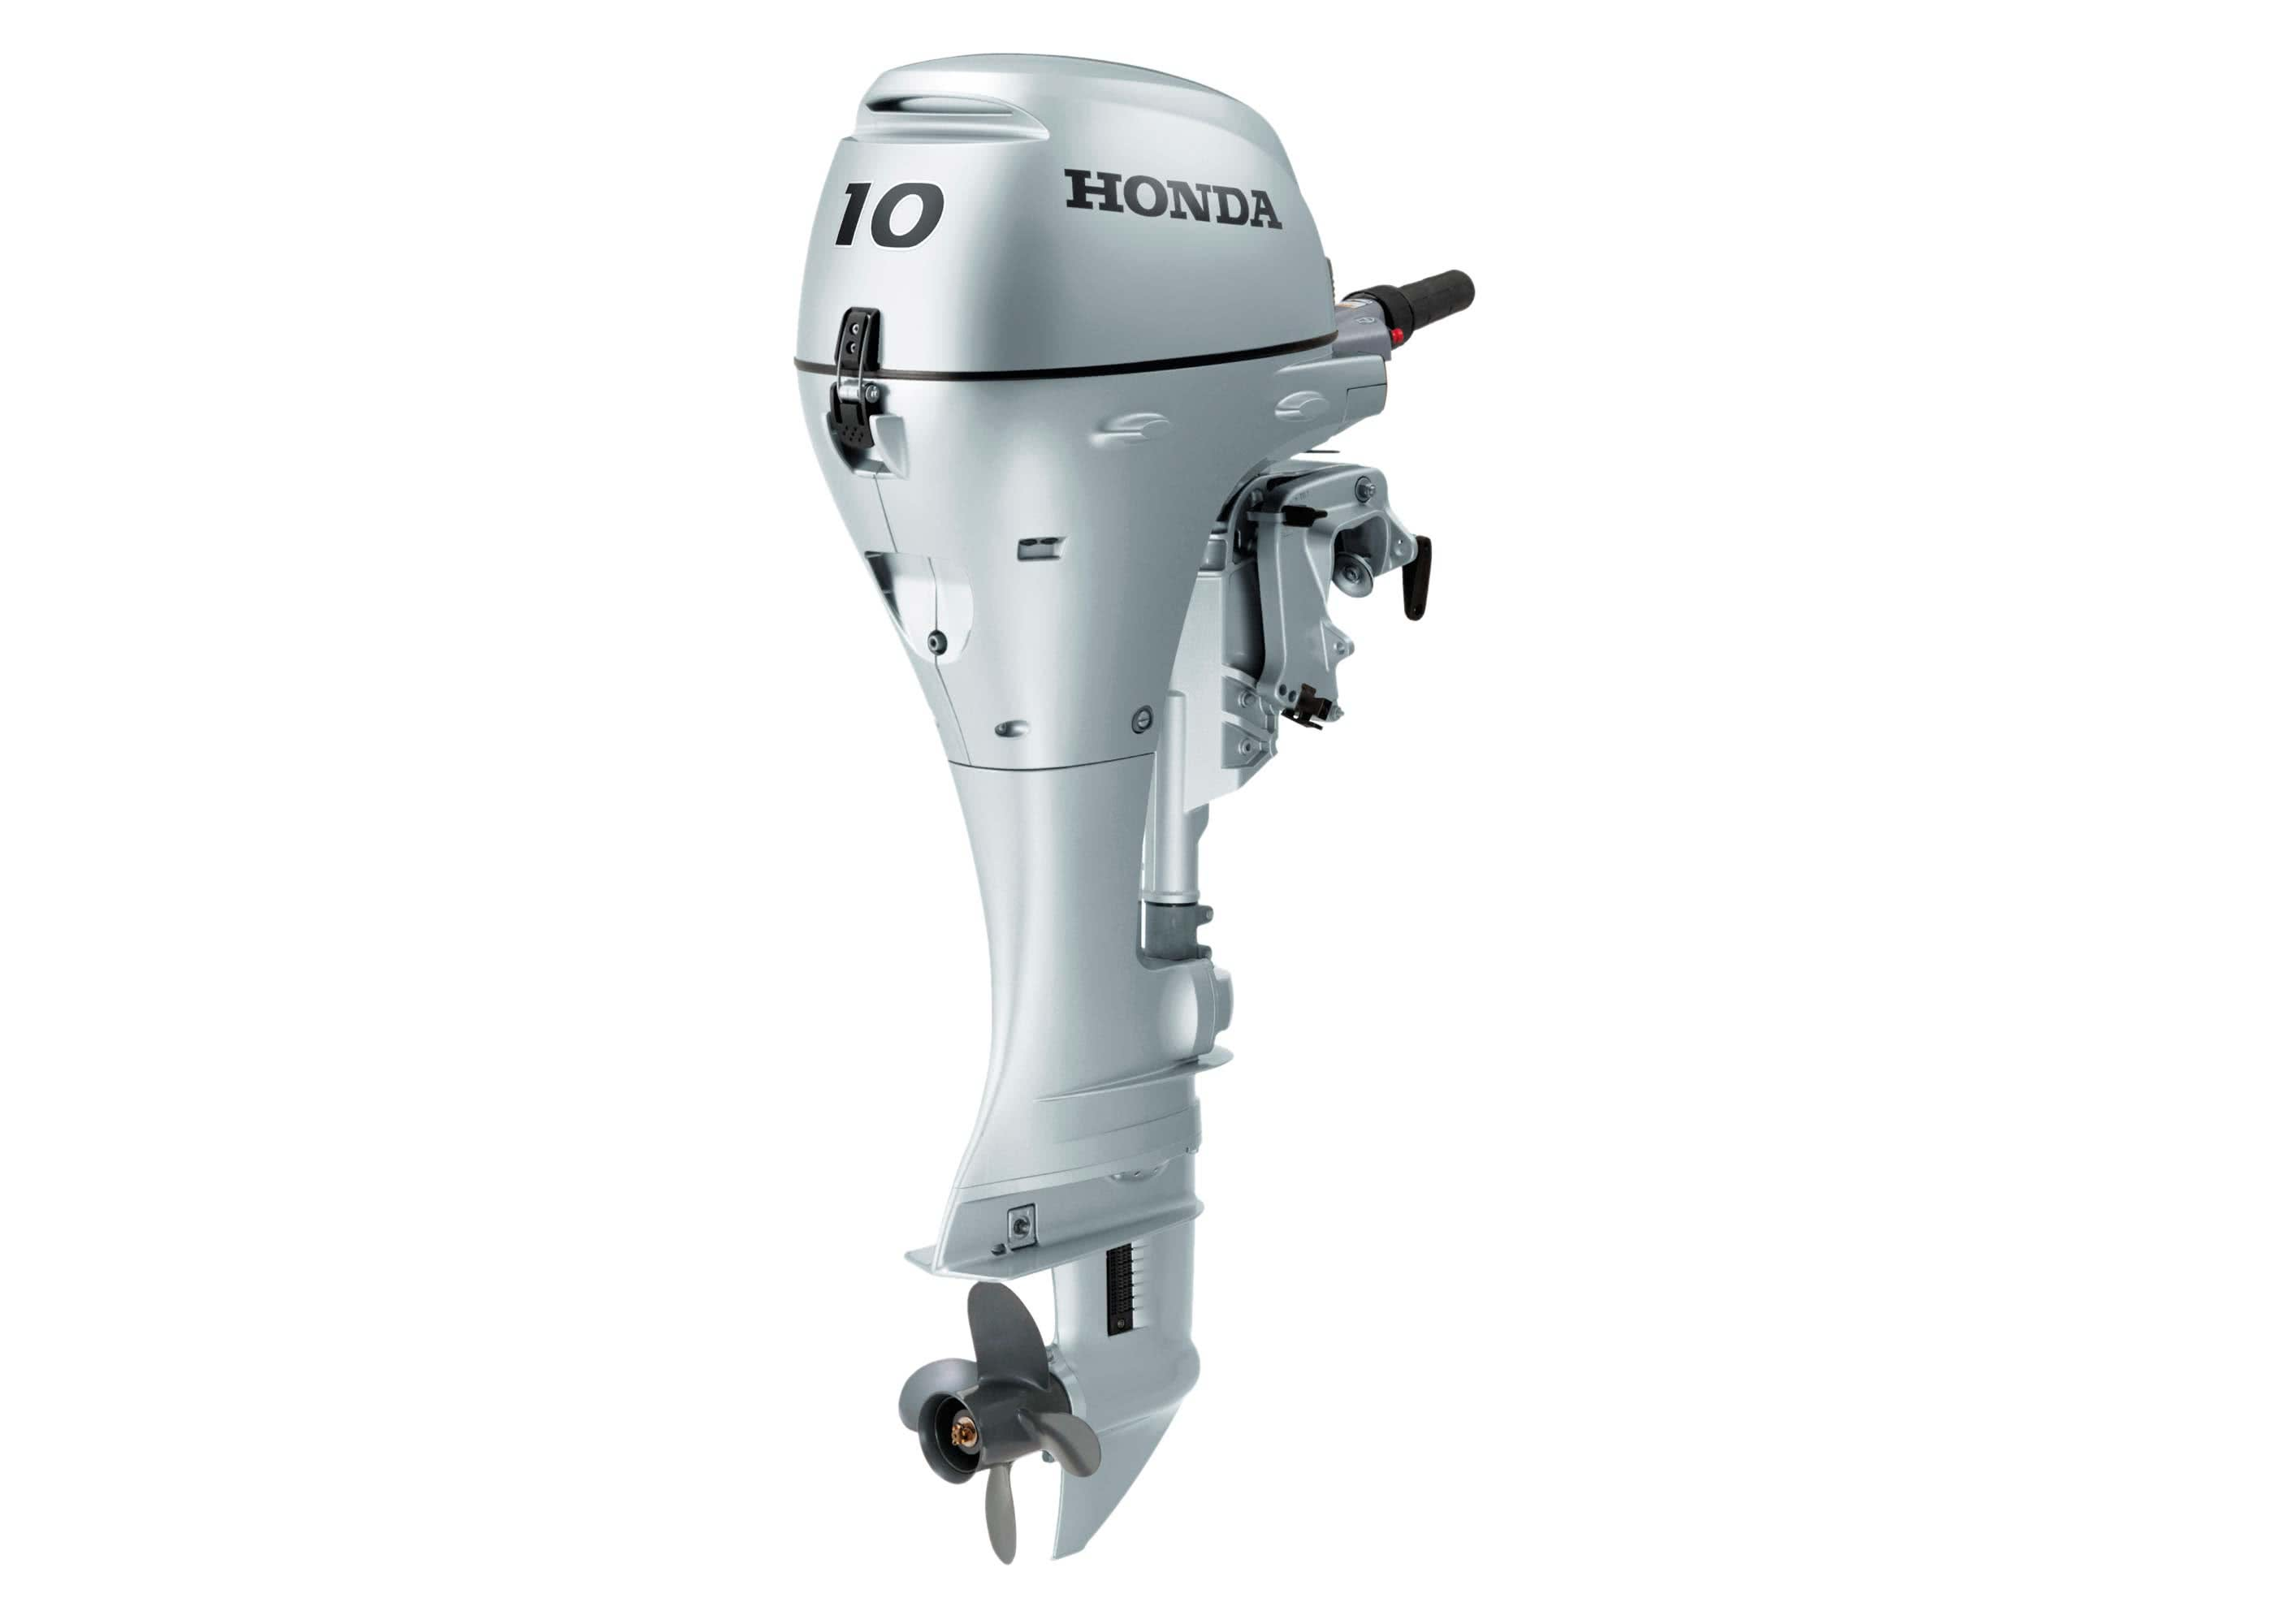 BF10 LHU Outboard Engine / Long Shaft / Manual Start product images SVB |  Yacht and boat equipment